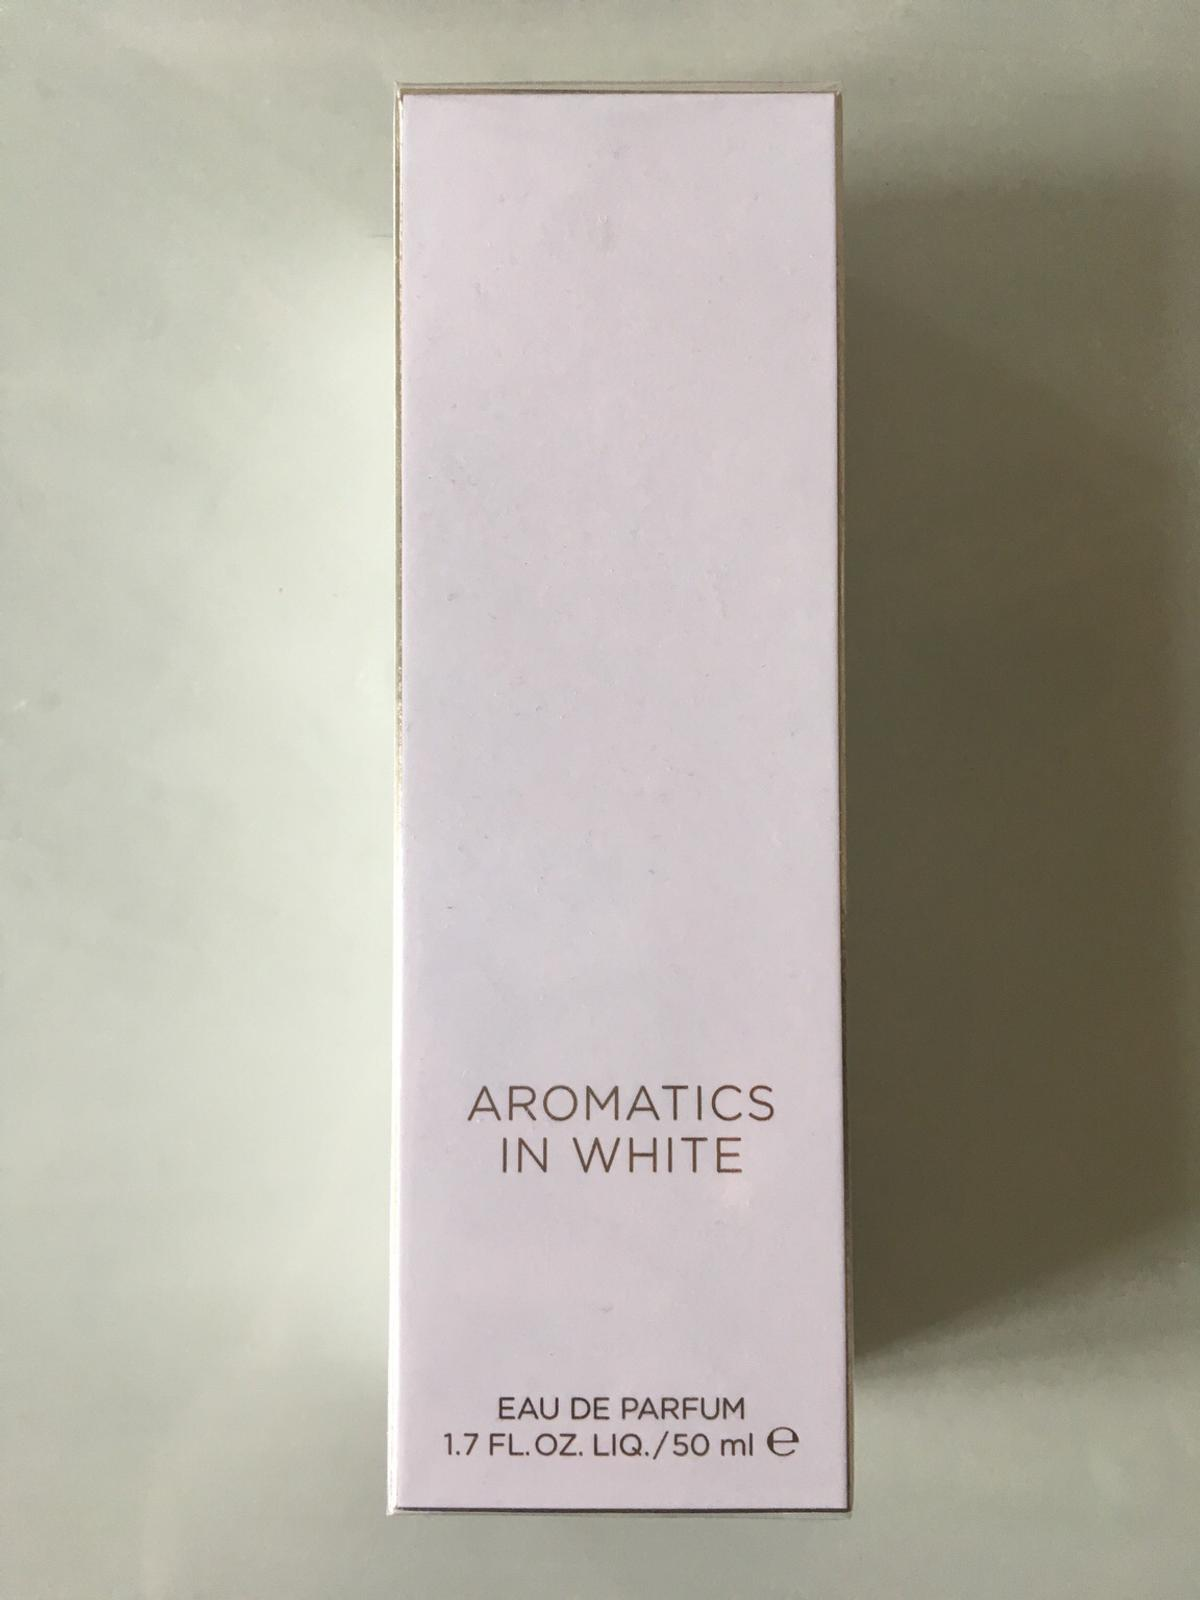 Perfume Sg19 Shqdctr White Clinique 99 For Aromatics In £12 Sandy deQrBoWCx